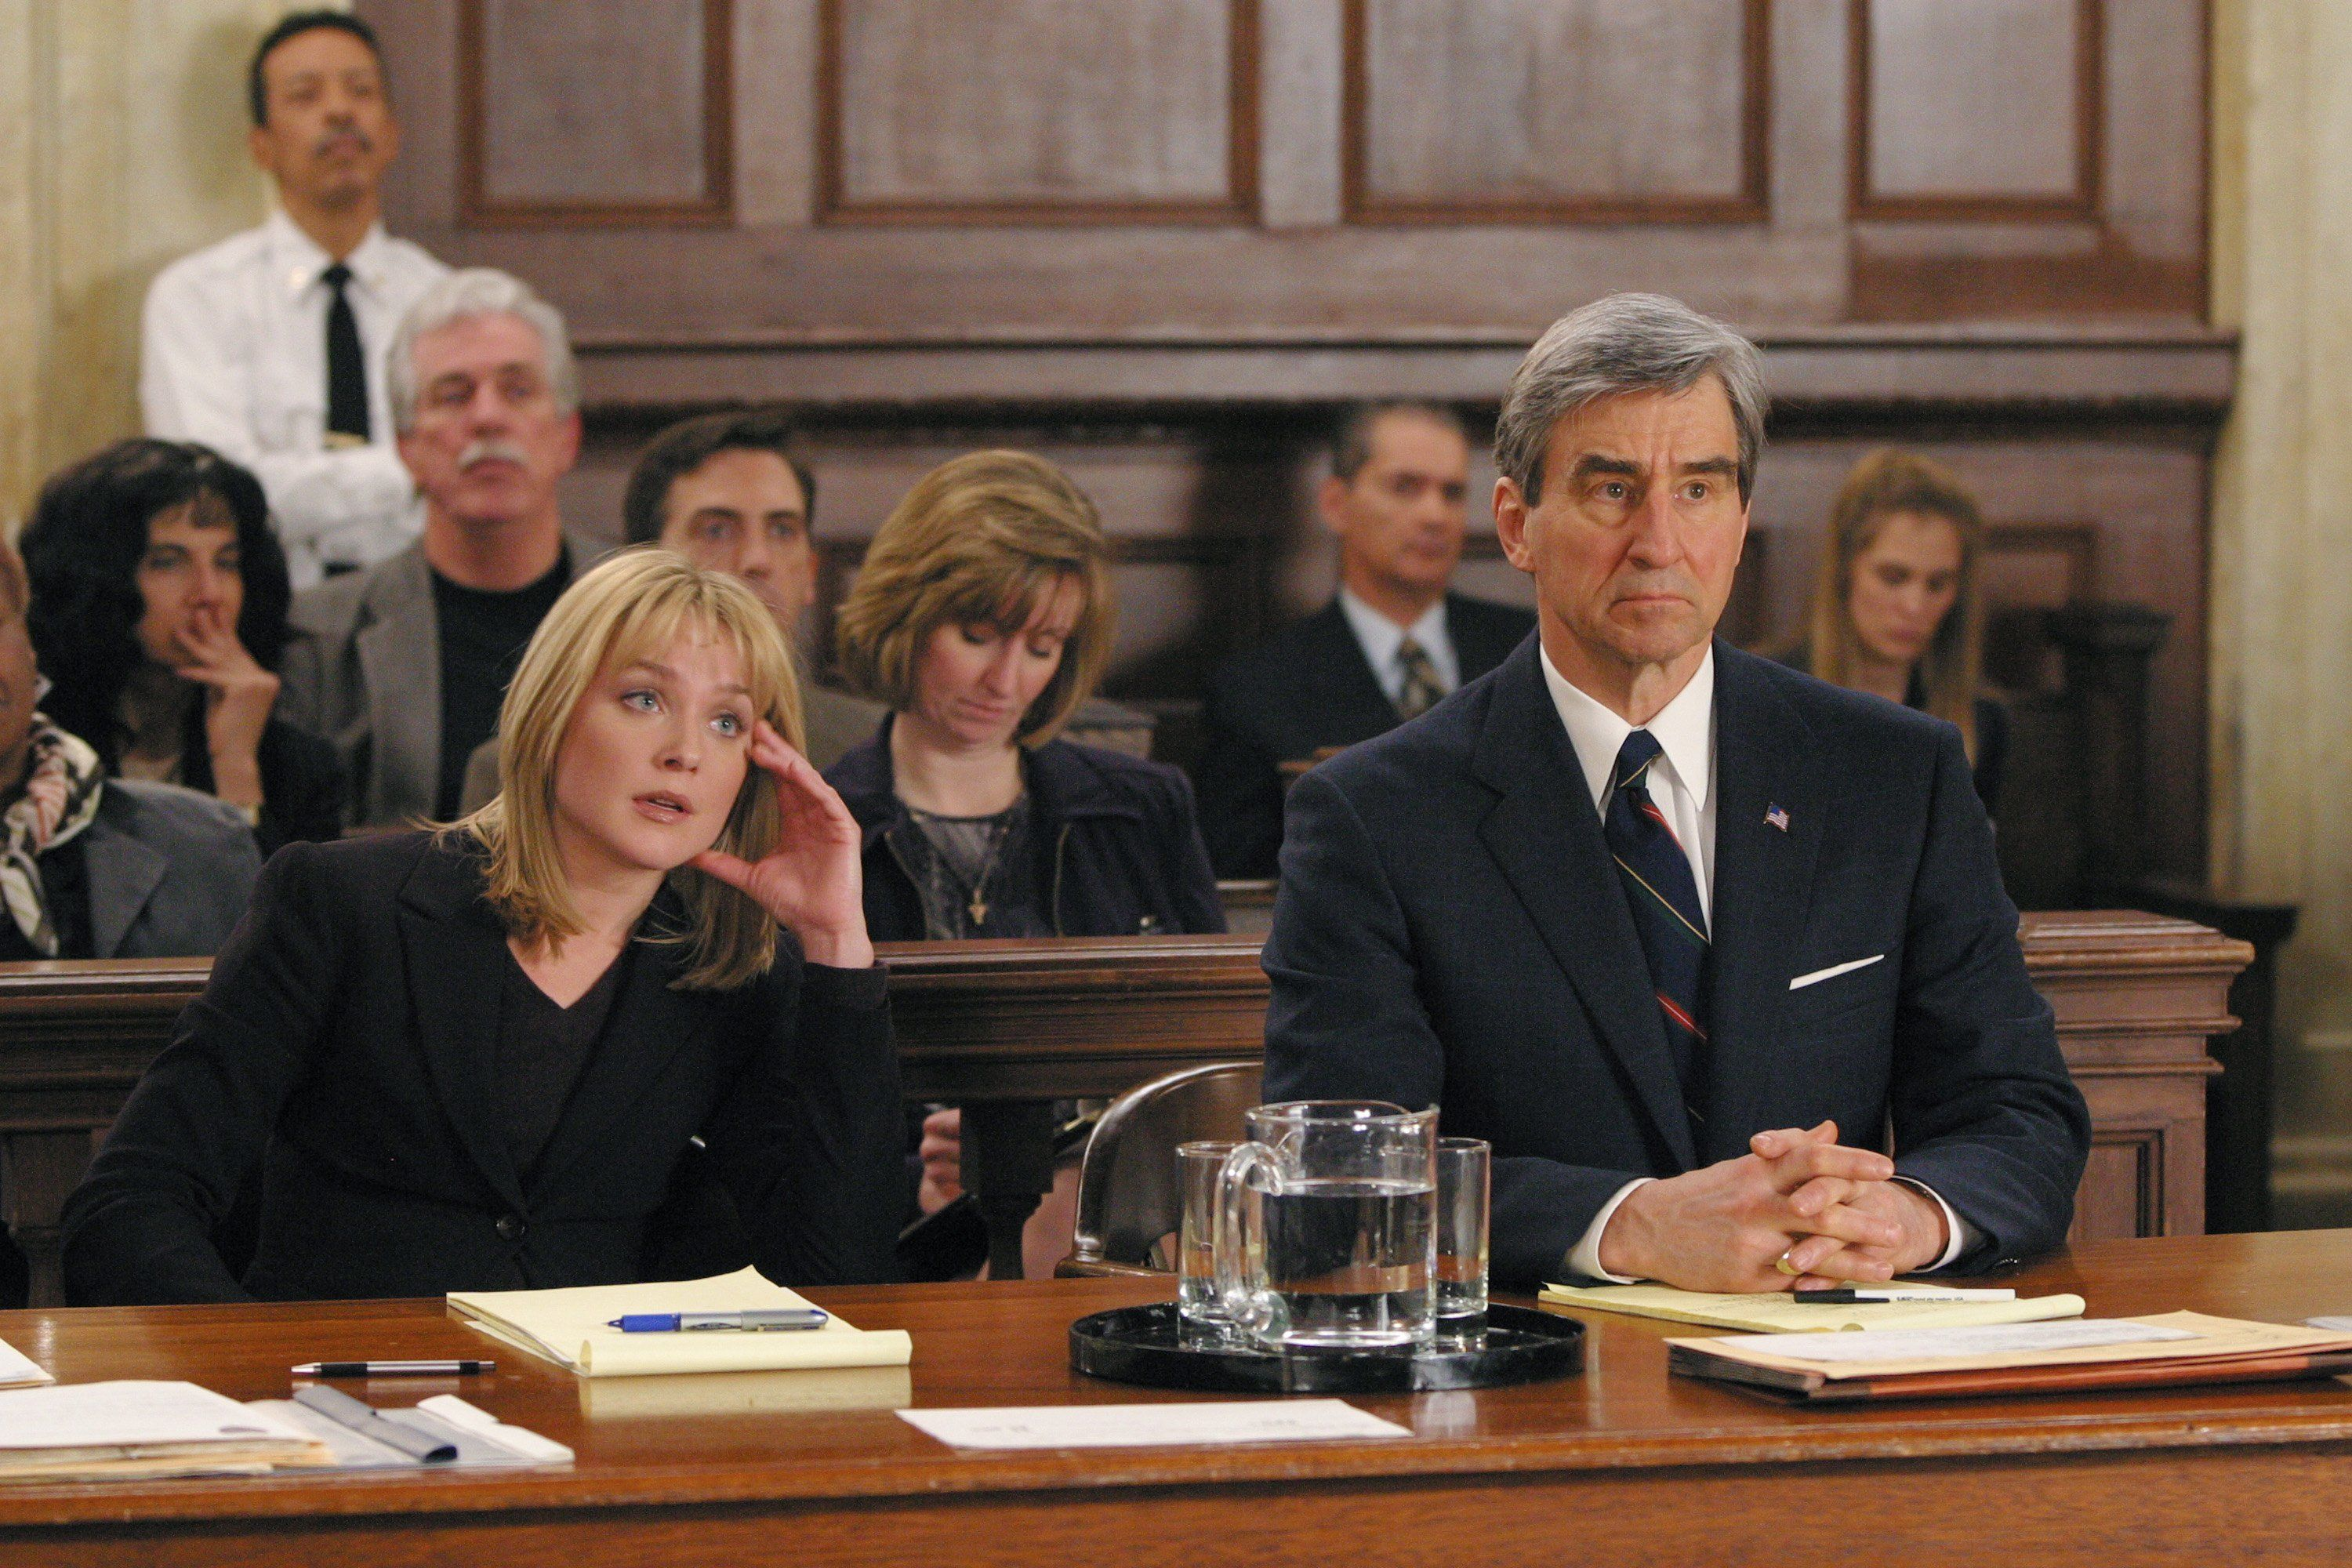 LAW & ORDER -- 'Suicide Box' Episode 16 -- Aired 03/26/2003 -- Pictured: (l-r) Elisabeth Rohm as A.D.A. Serena Southerlyn and Sam Waterston as Executive A.D.A. Jack McCoy -- Photo by: NBCU Photo Bank